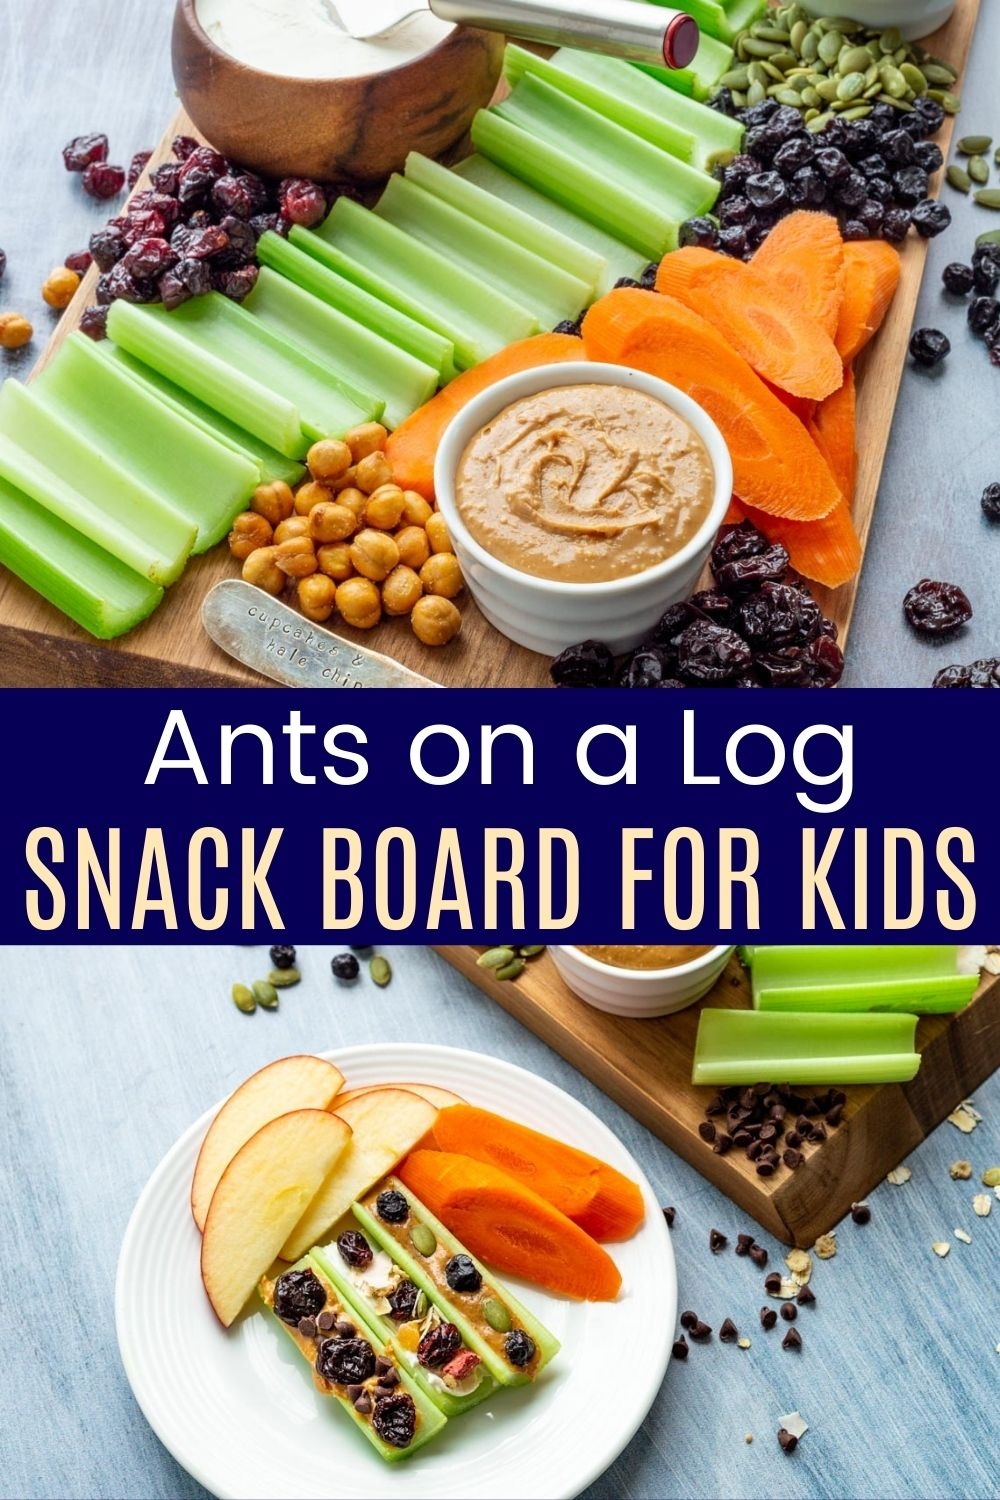 Ants On A Log Snack Platter For Kids Start With Celery Carrots And Apples And Add Peanut Butter Kids Snack Food Delicious Appetizer Recipes Snack Recipes